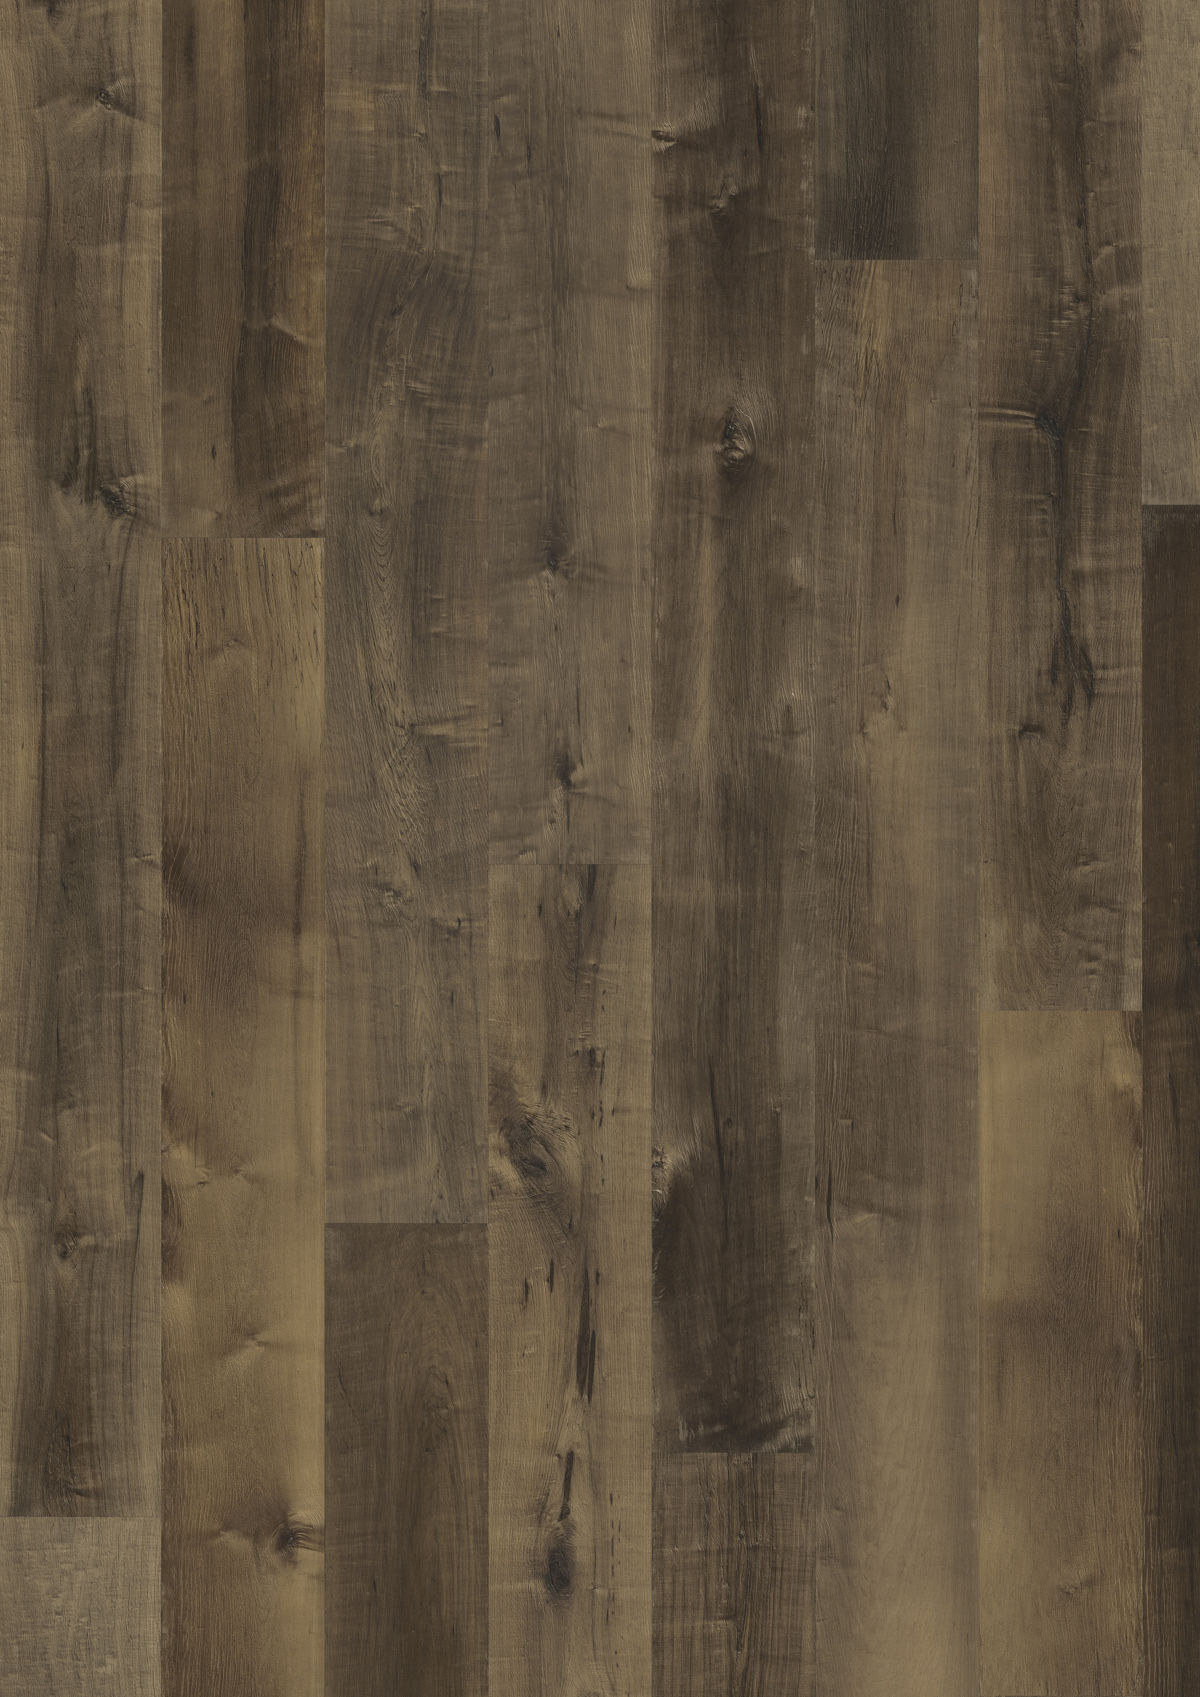 kahrs artisan maple carob engineered wood flooring. Black Bedroom Furniture Sets. Home Design Ideas